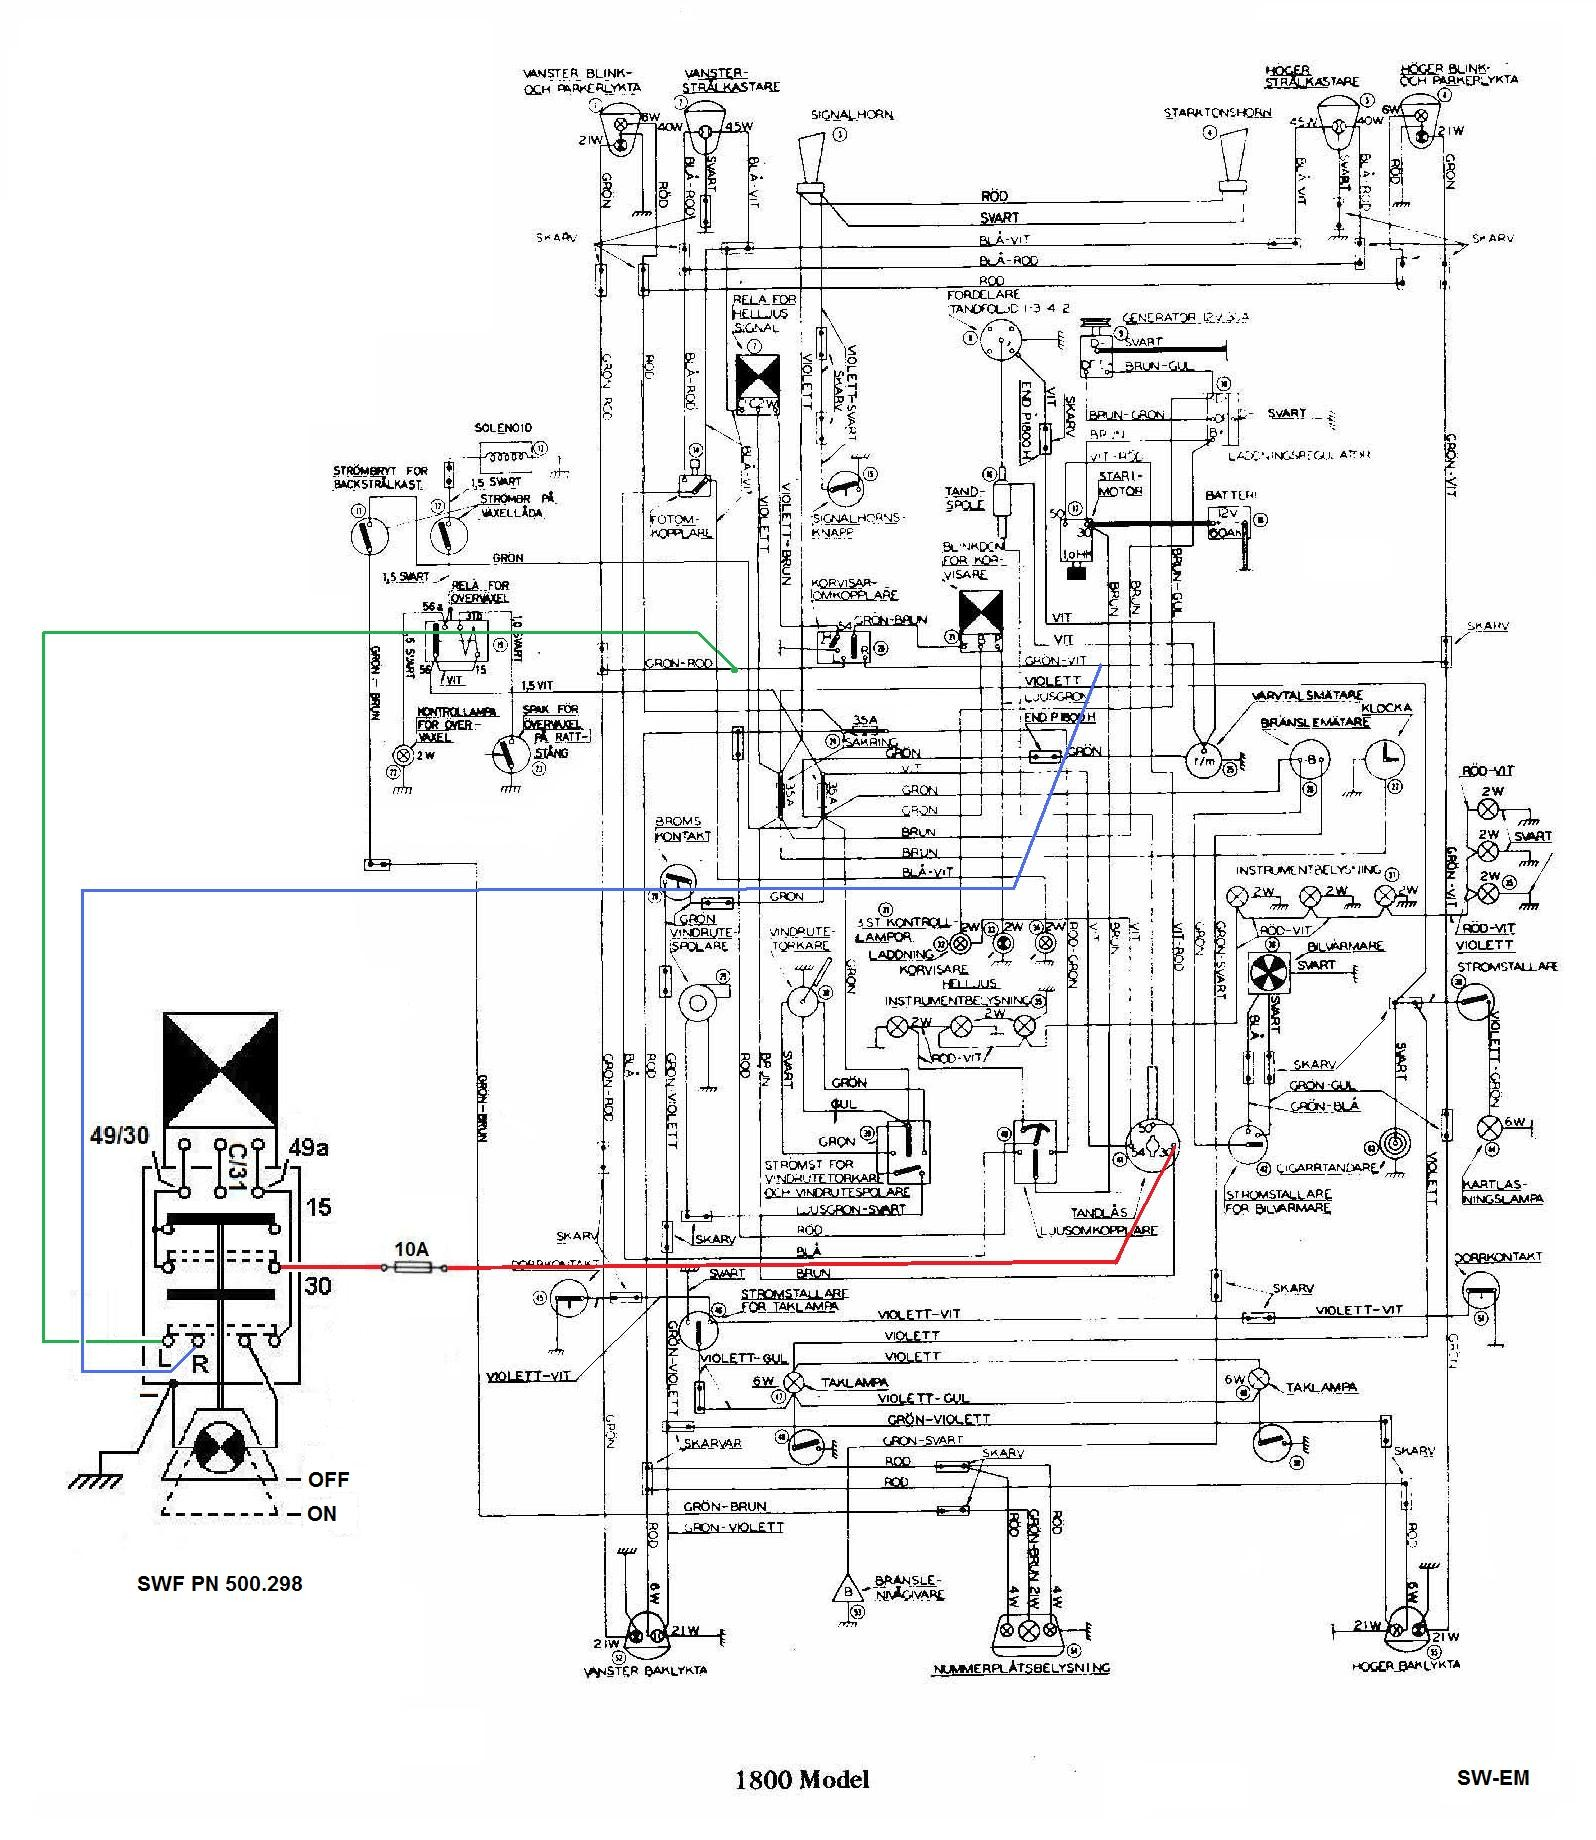 Signal Light Flasher Wiring Diagram Ford Truck Technical Drawings And Schematics Section H Sw Em Emergency Of